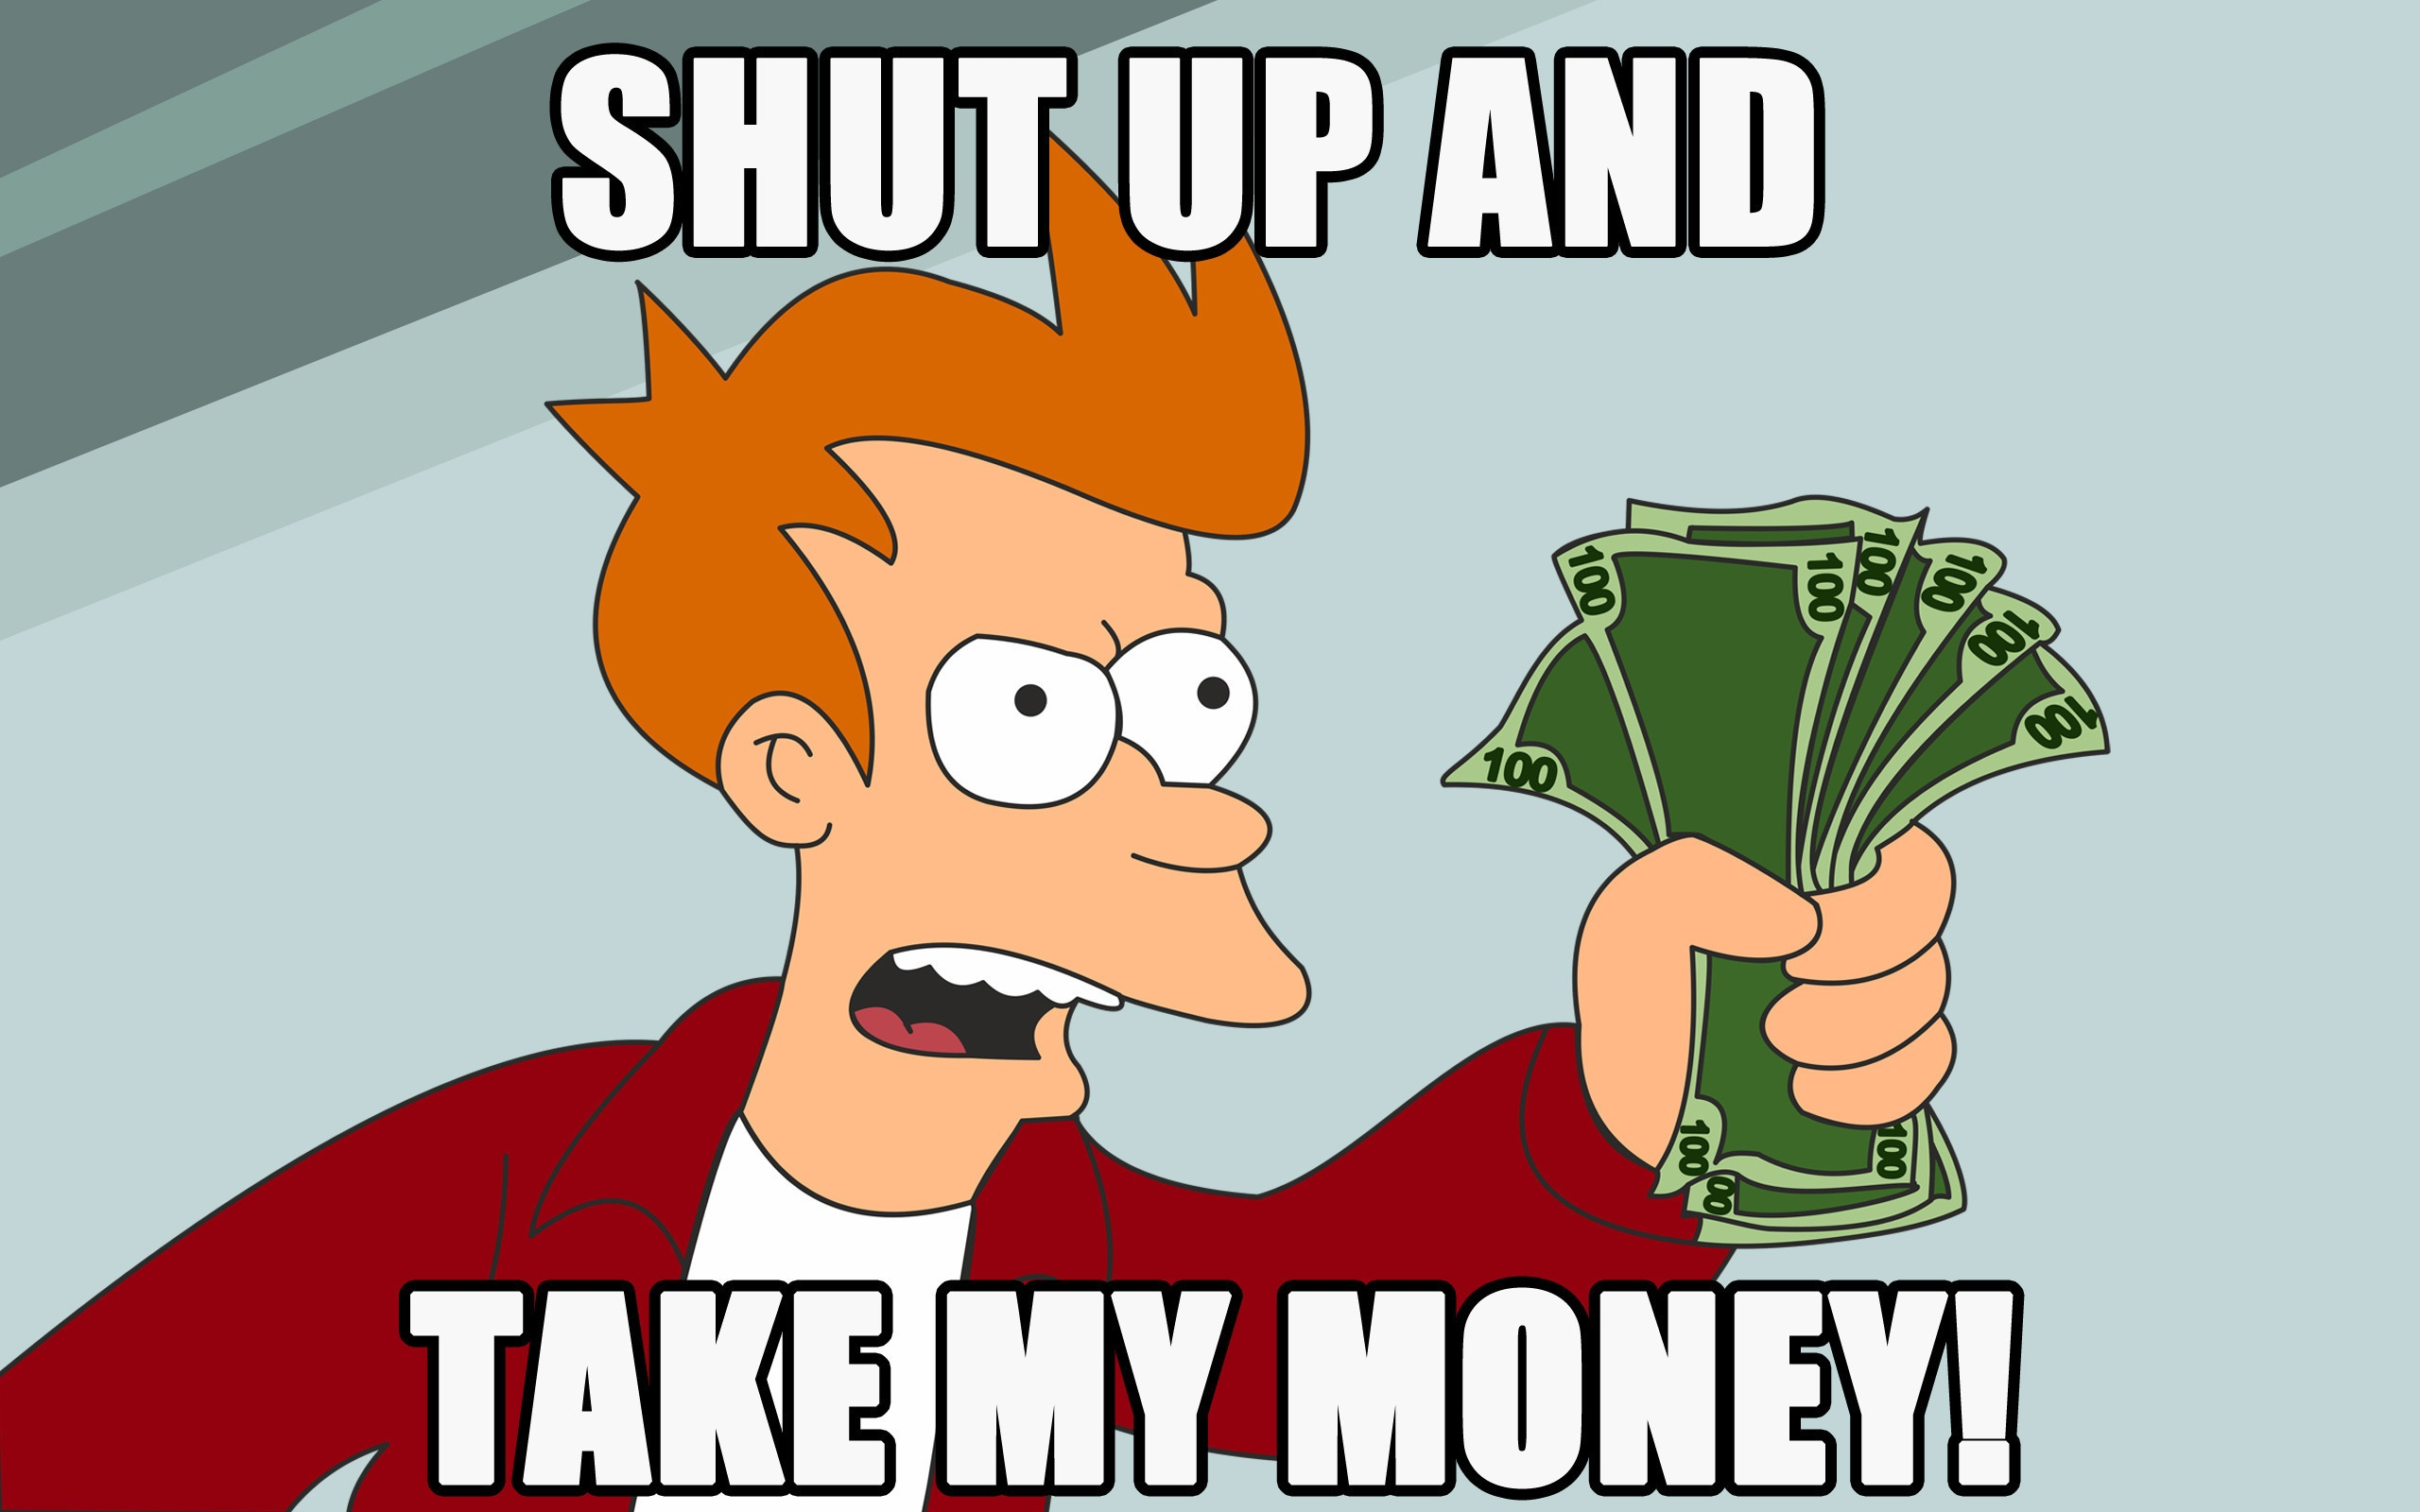 Futurama-shut-up-and-take-my-money-card-34